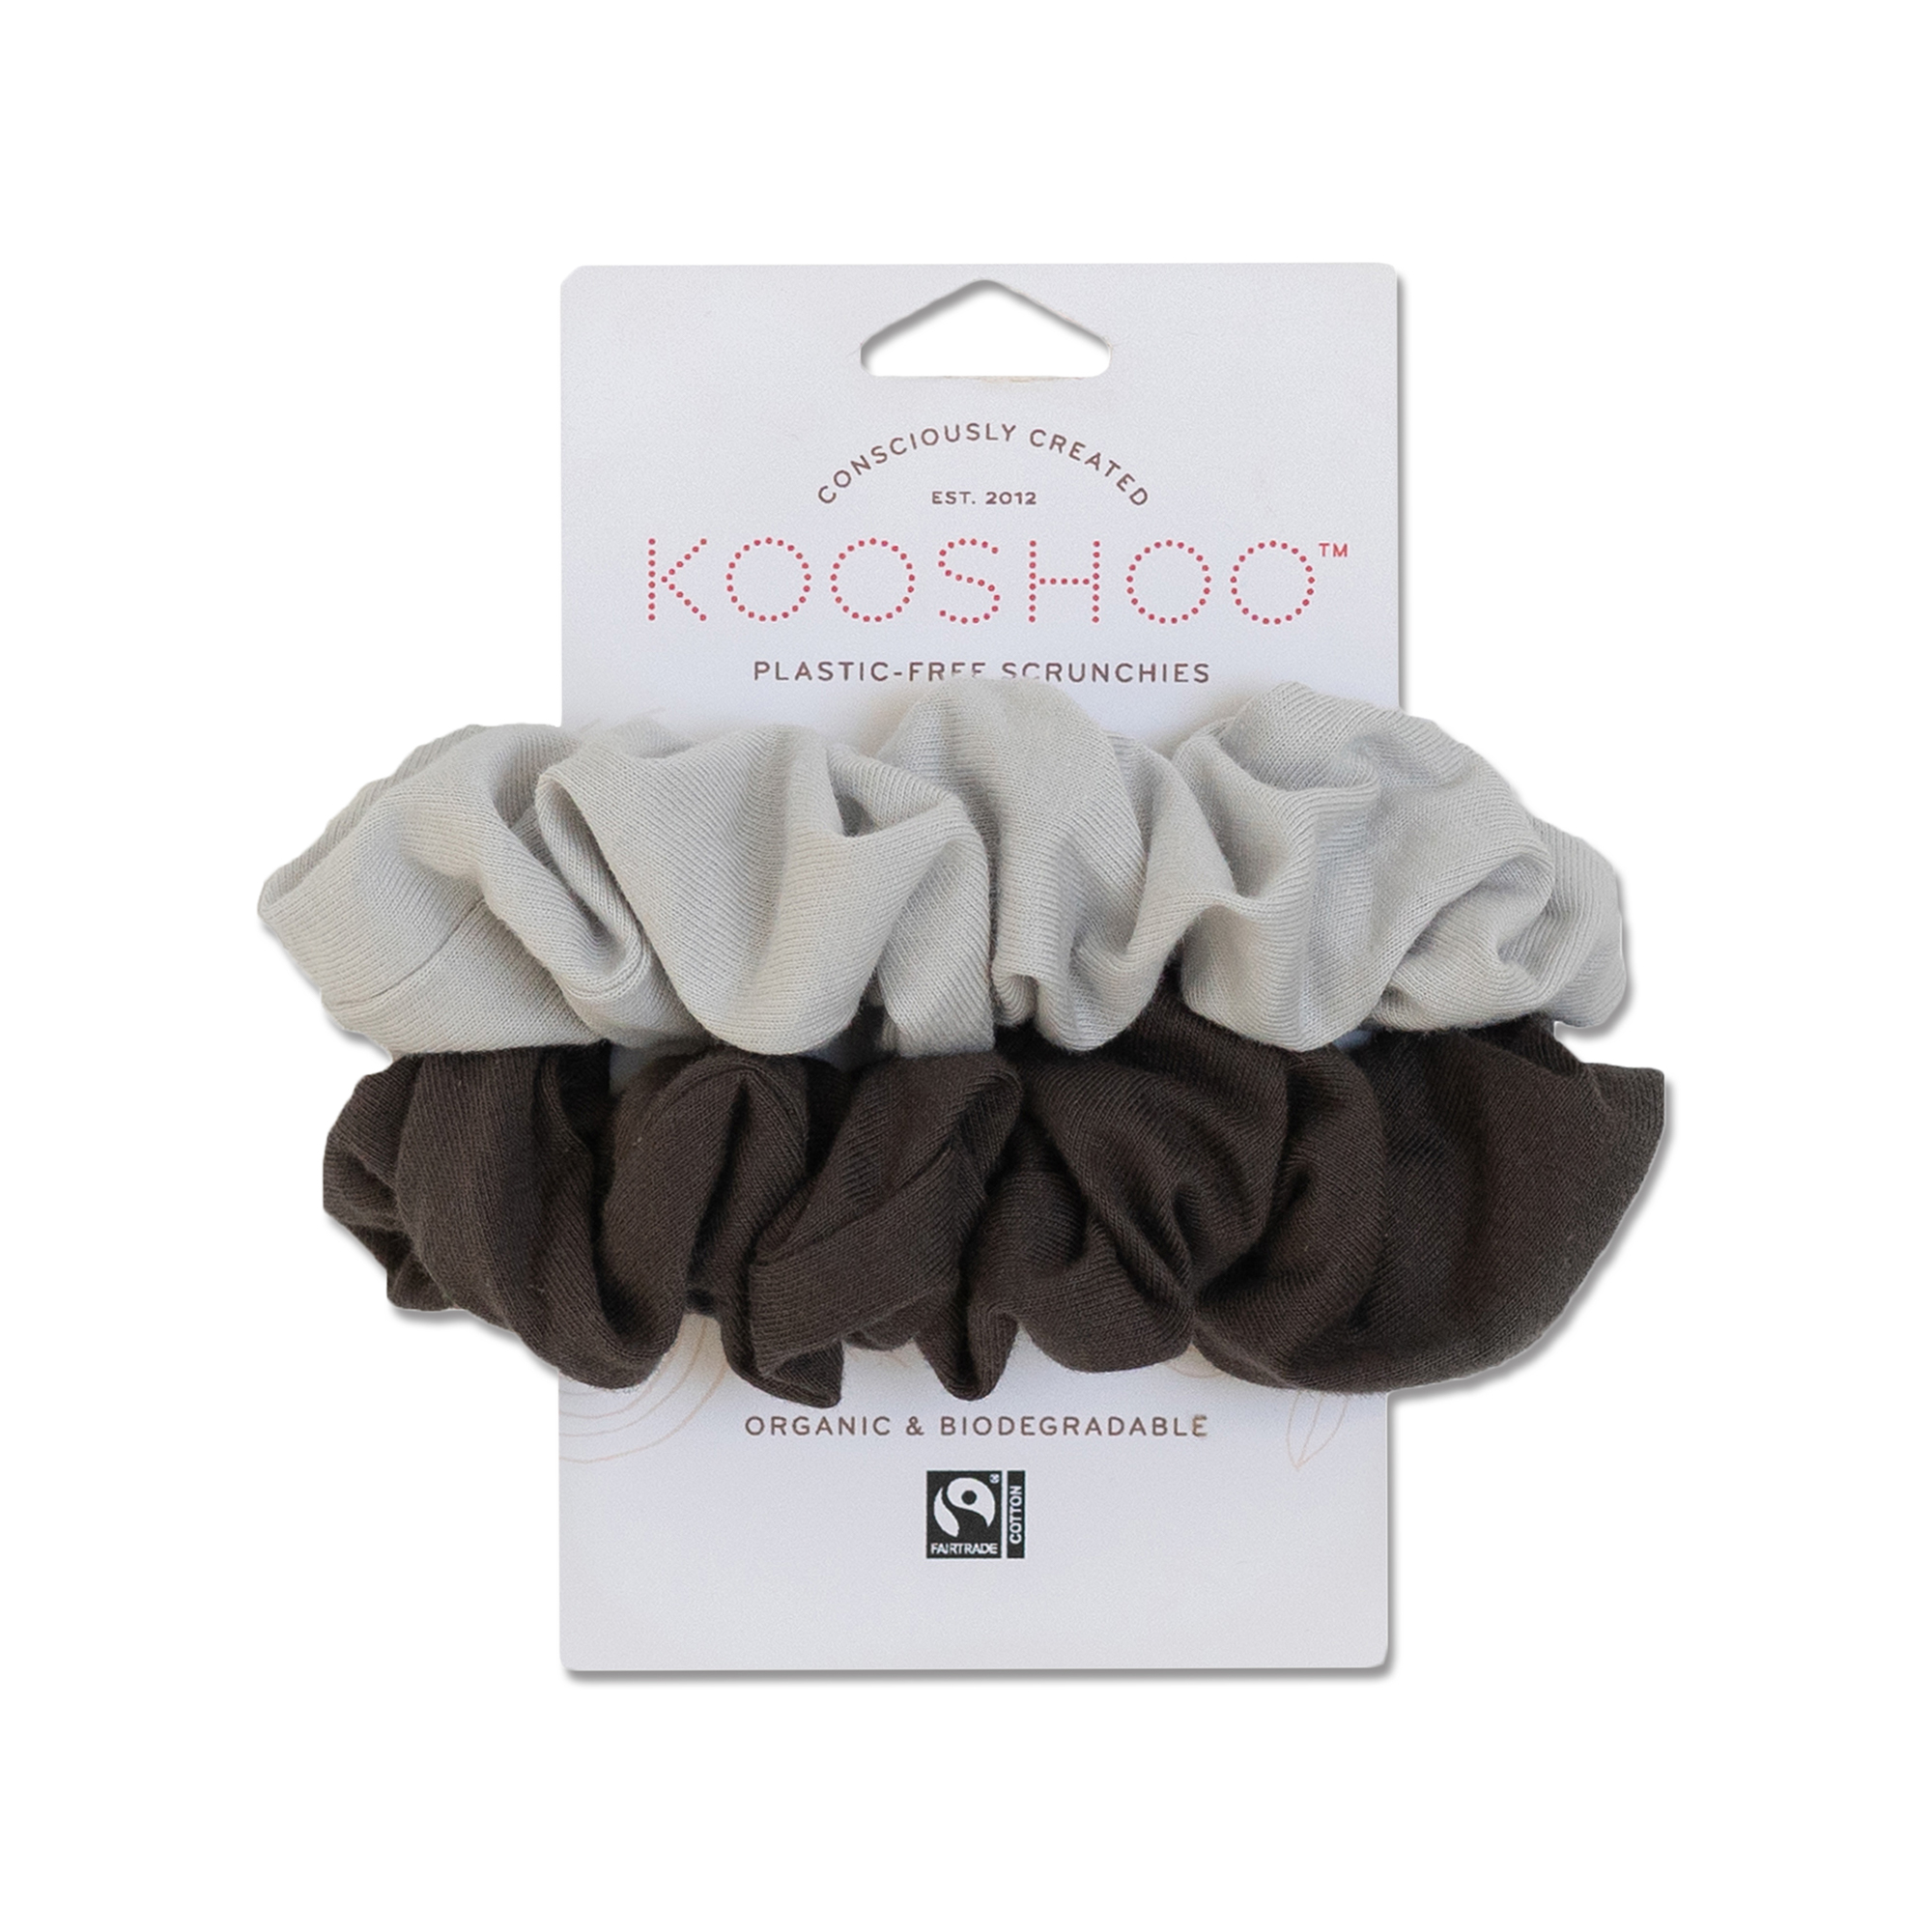 Kooshoo scrunchies moon shadow 4536